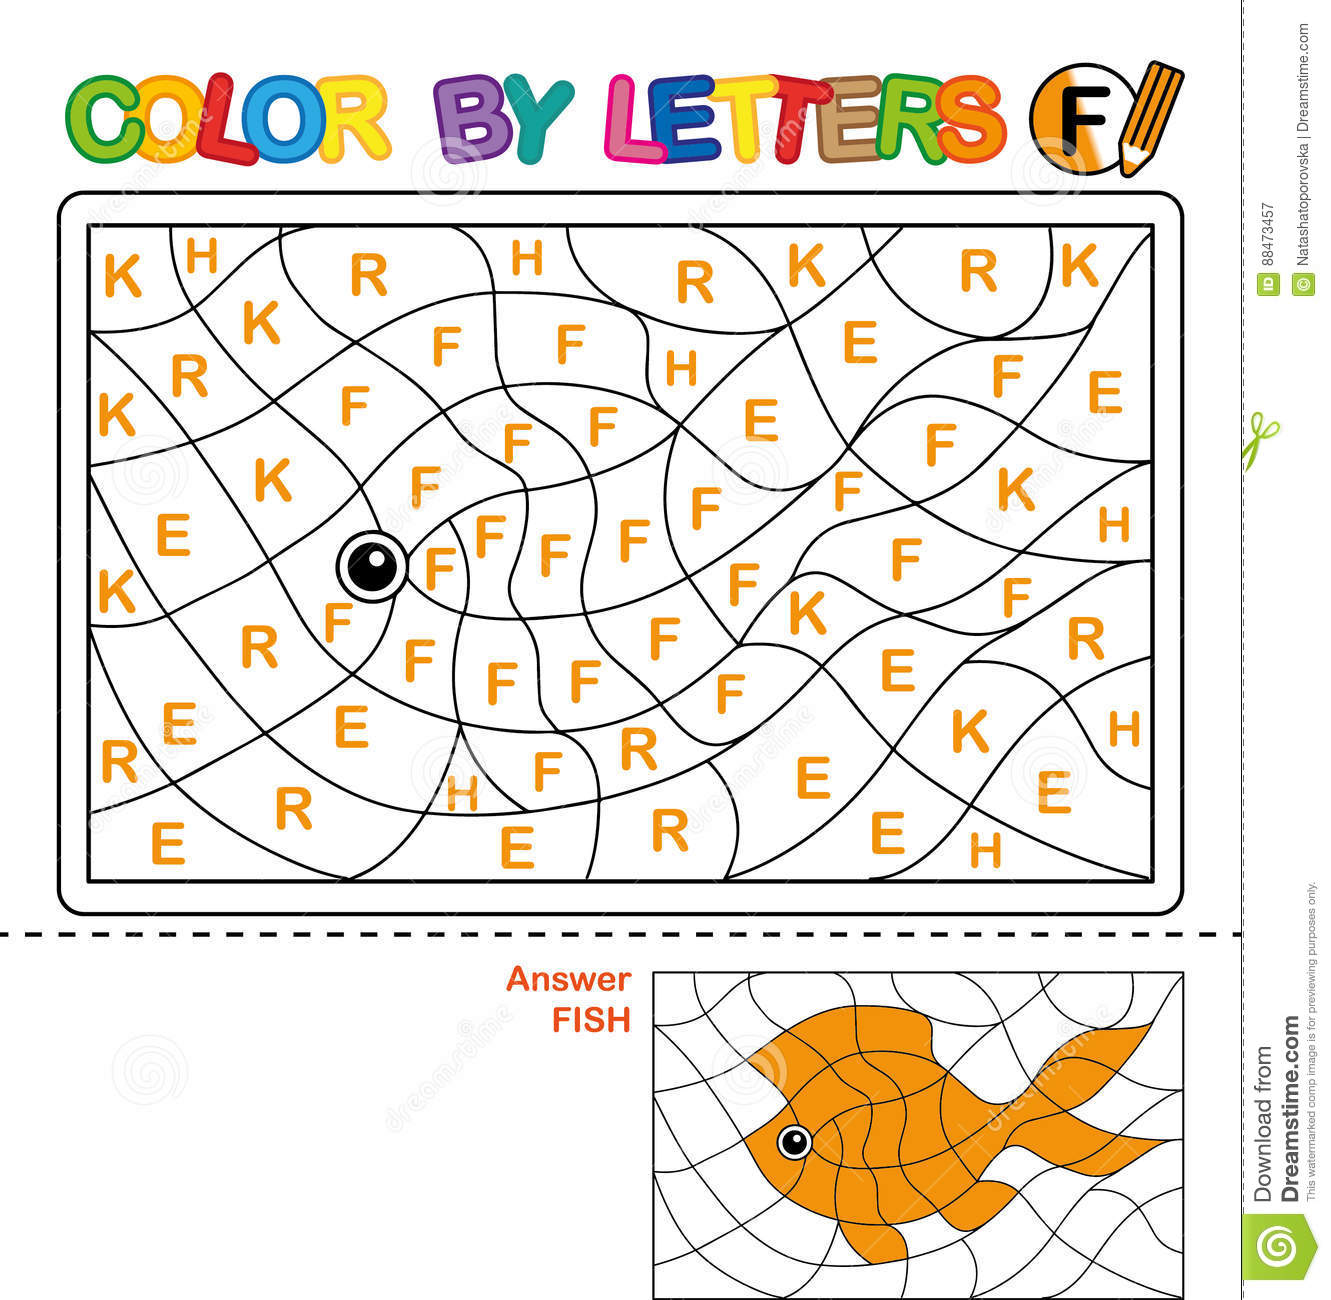 Color By Letter Puzzle For Children Fish Cartoon Vector